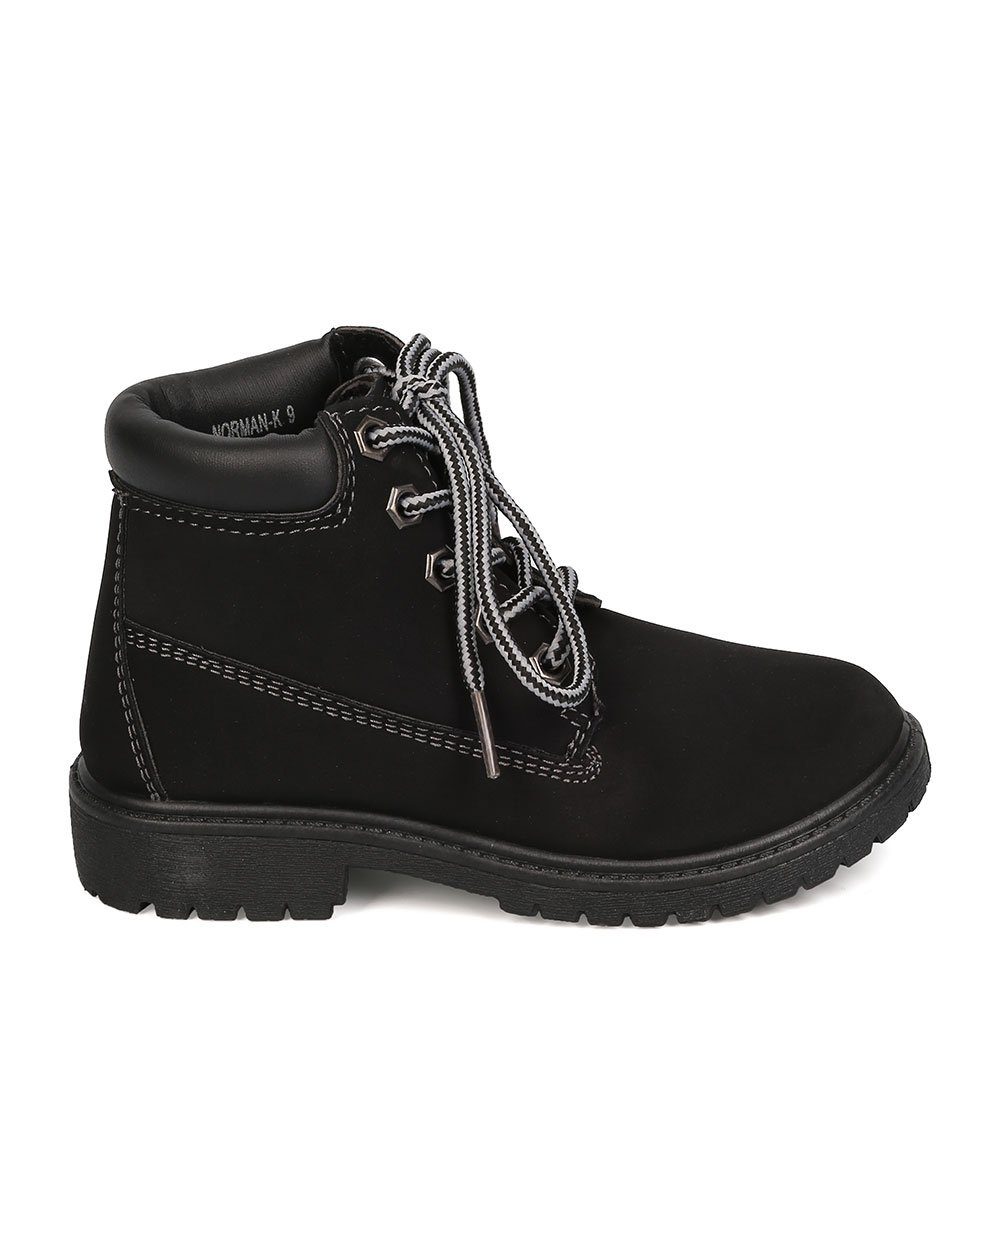 Nubuck Round Toe Lace Up Lug Sole All Weather Ankle Boot (Toddler/Little Girl/Big Girl) FA28 - Black (Size: Toddler 9) by Refresh (Image #2)